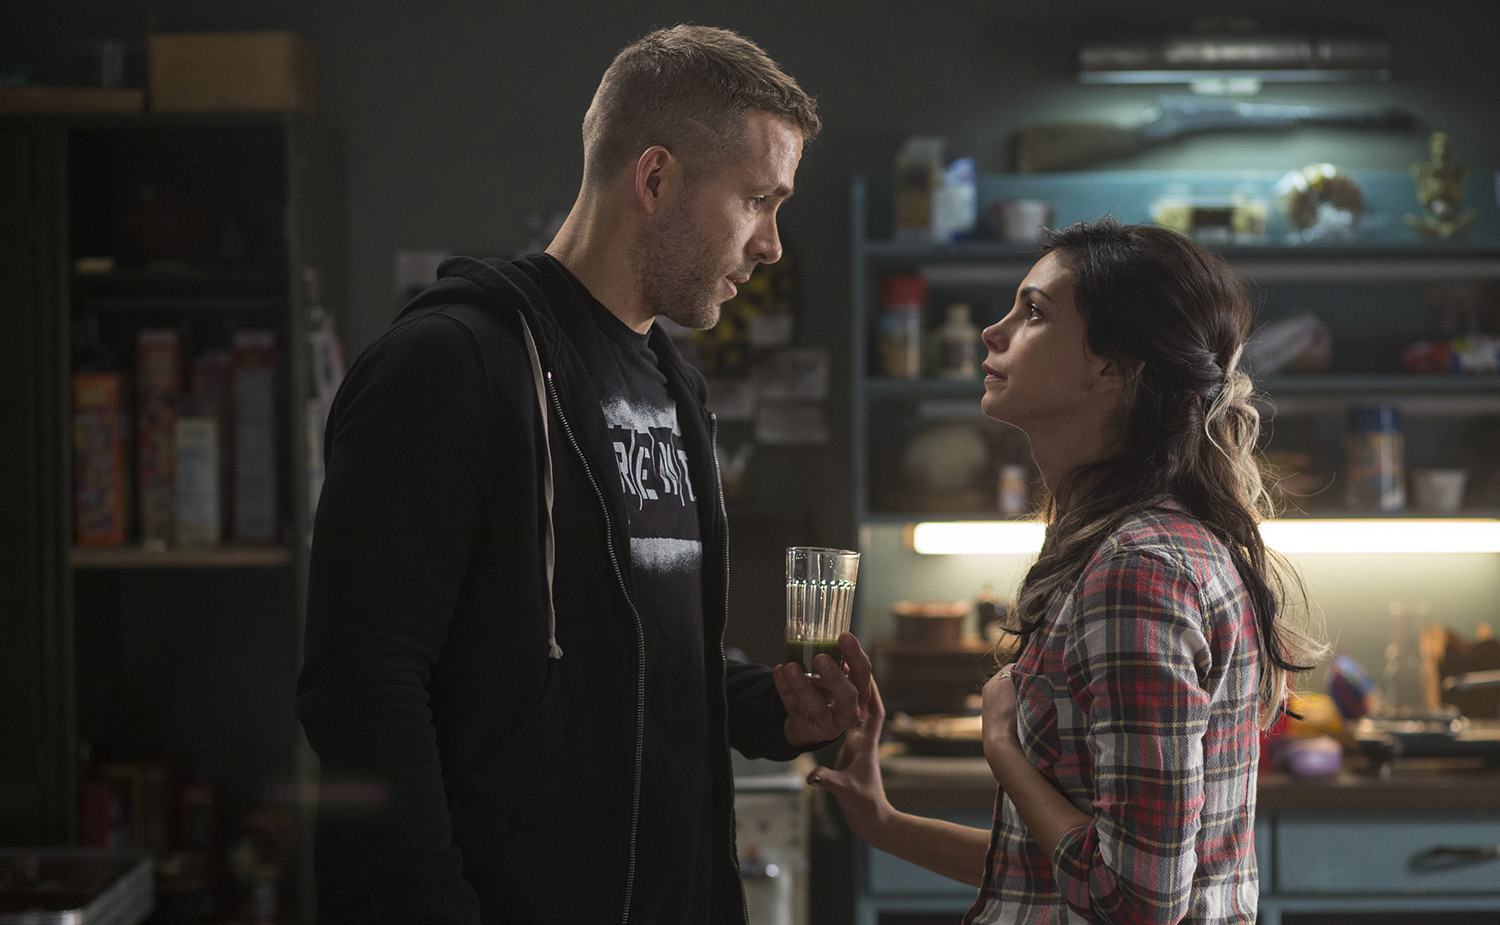 Wade Wilson (Ryan Reyonlds) and Vanessa (Morena Baccarin) disagree over how to handle his cancer diagnosis.